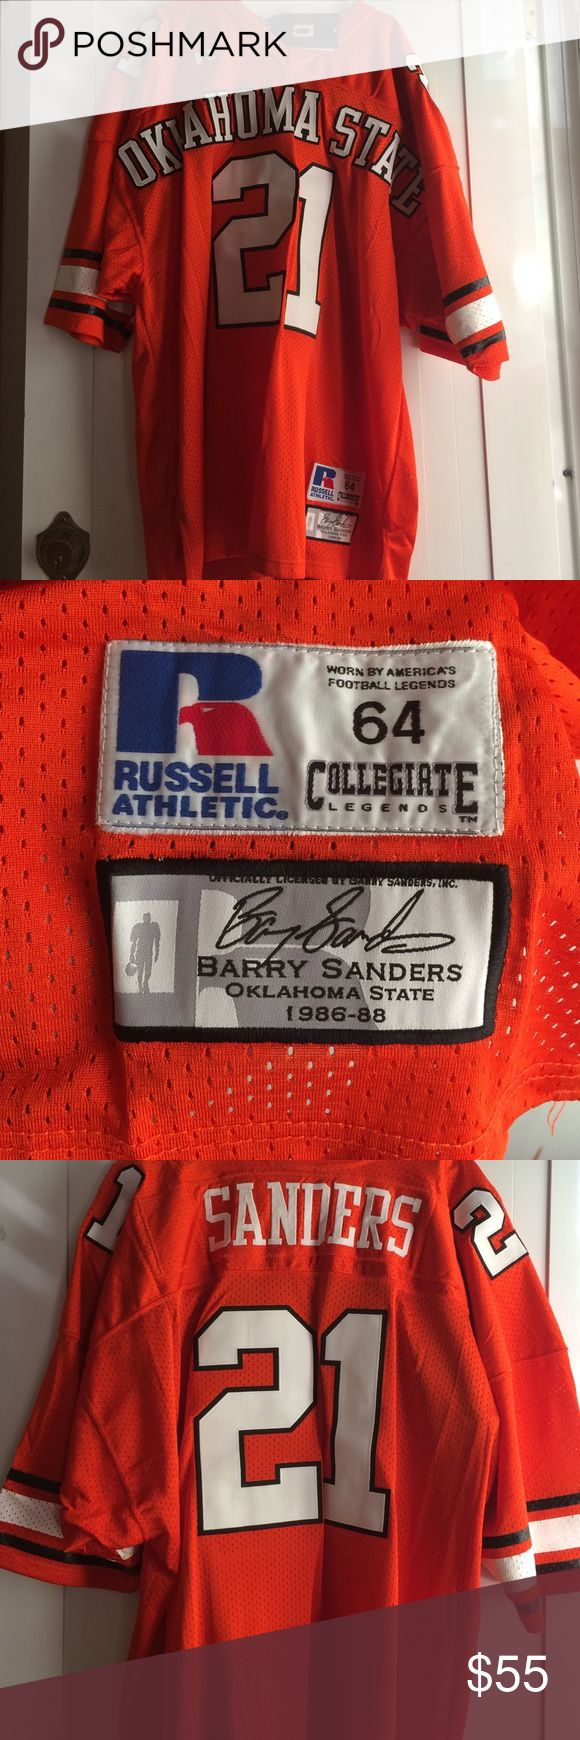 Oklahoma State Barry Sander Jersey size 64 New never used with Tags size 64 Barry Sanders Oklahoma State football Jersey Sewn on number and name. Awesome Jersey Russell Athletic Other